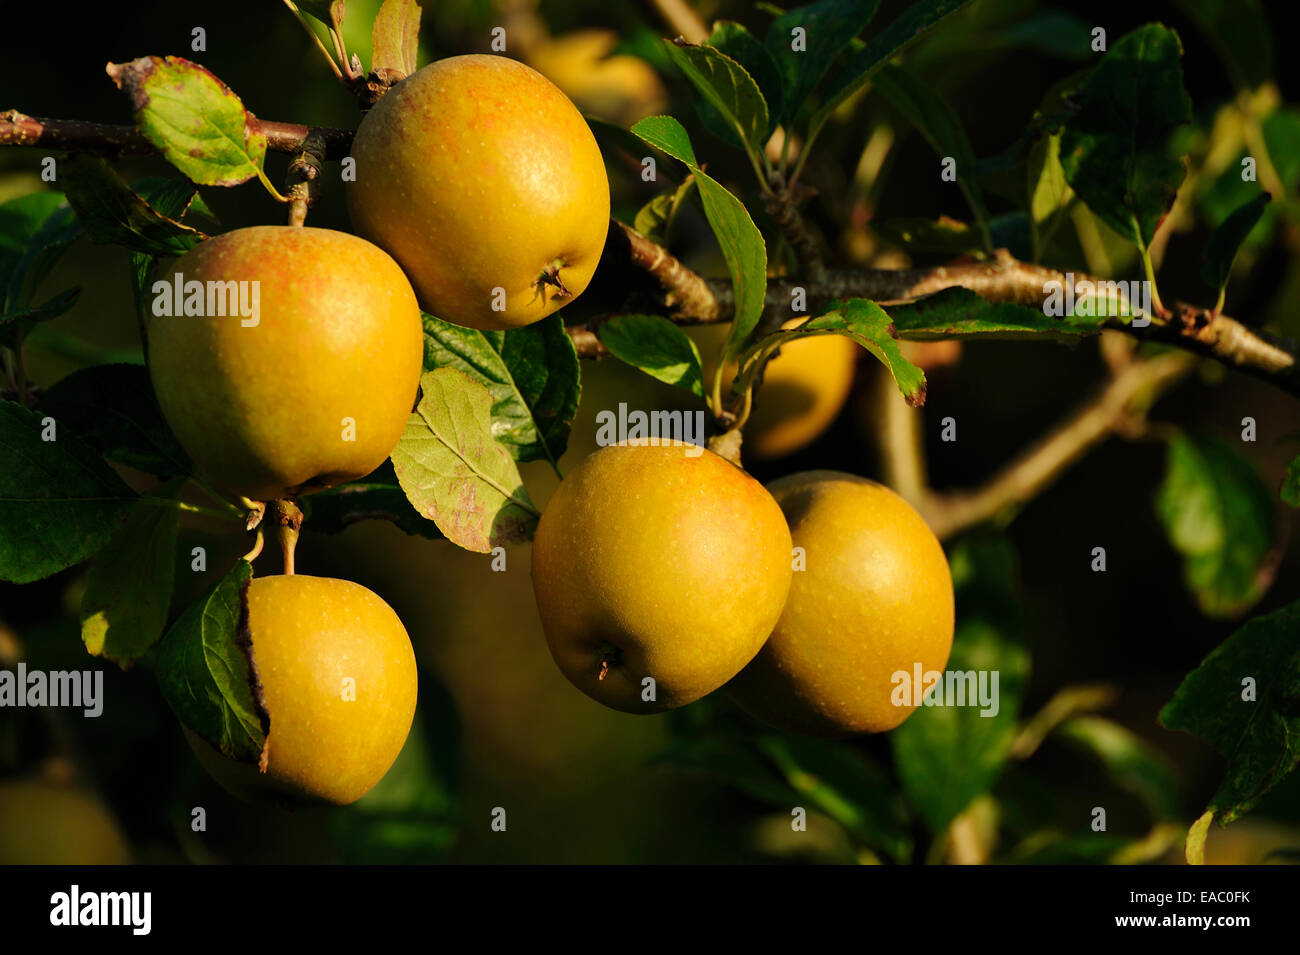 CIDER APPLES GROWING ON AN APPLE TREE - Stock Image